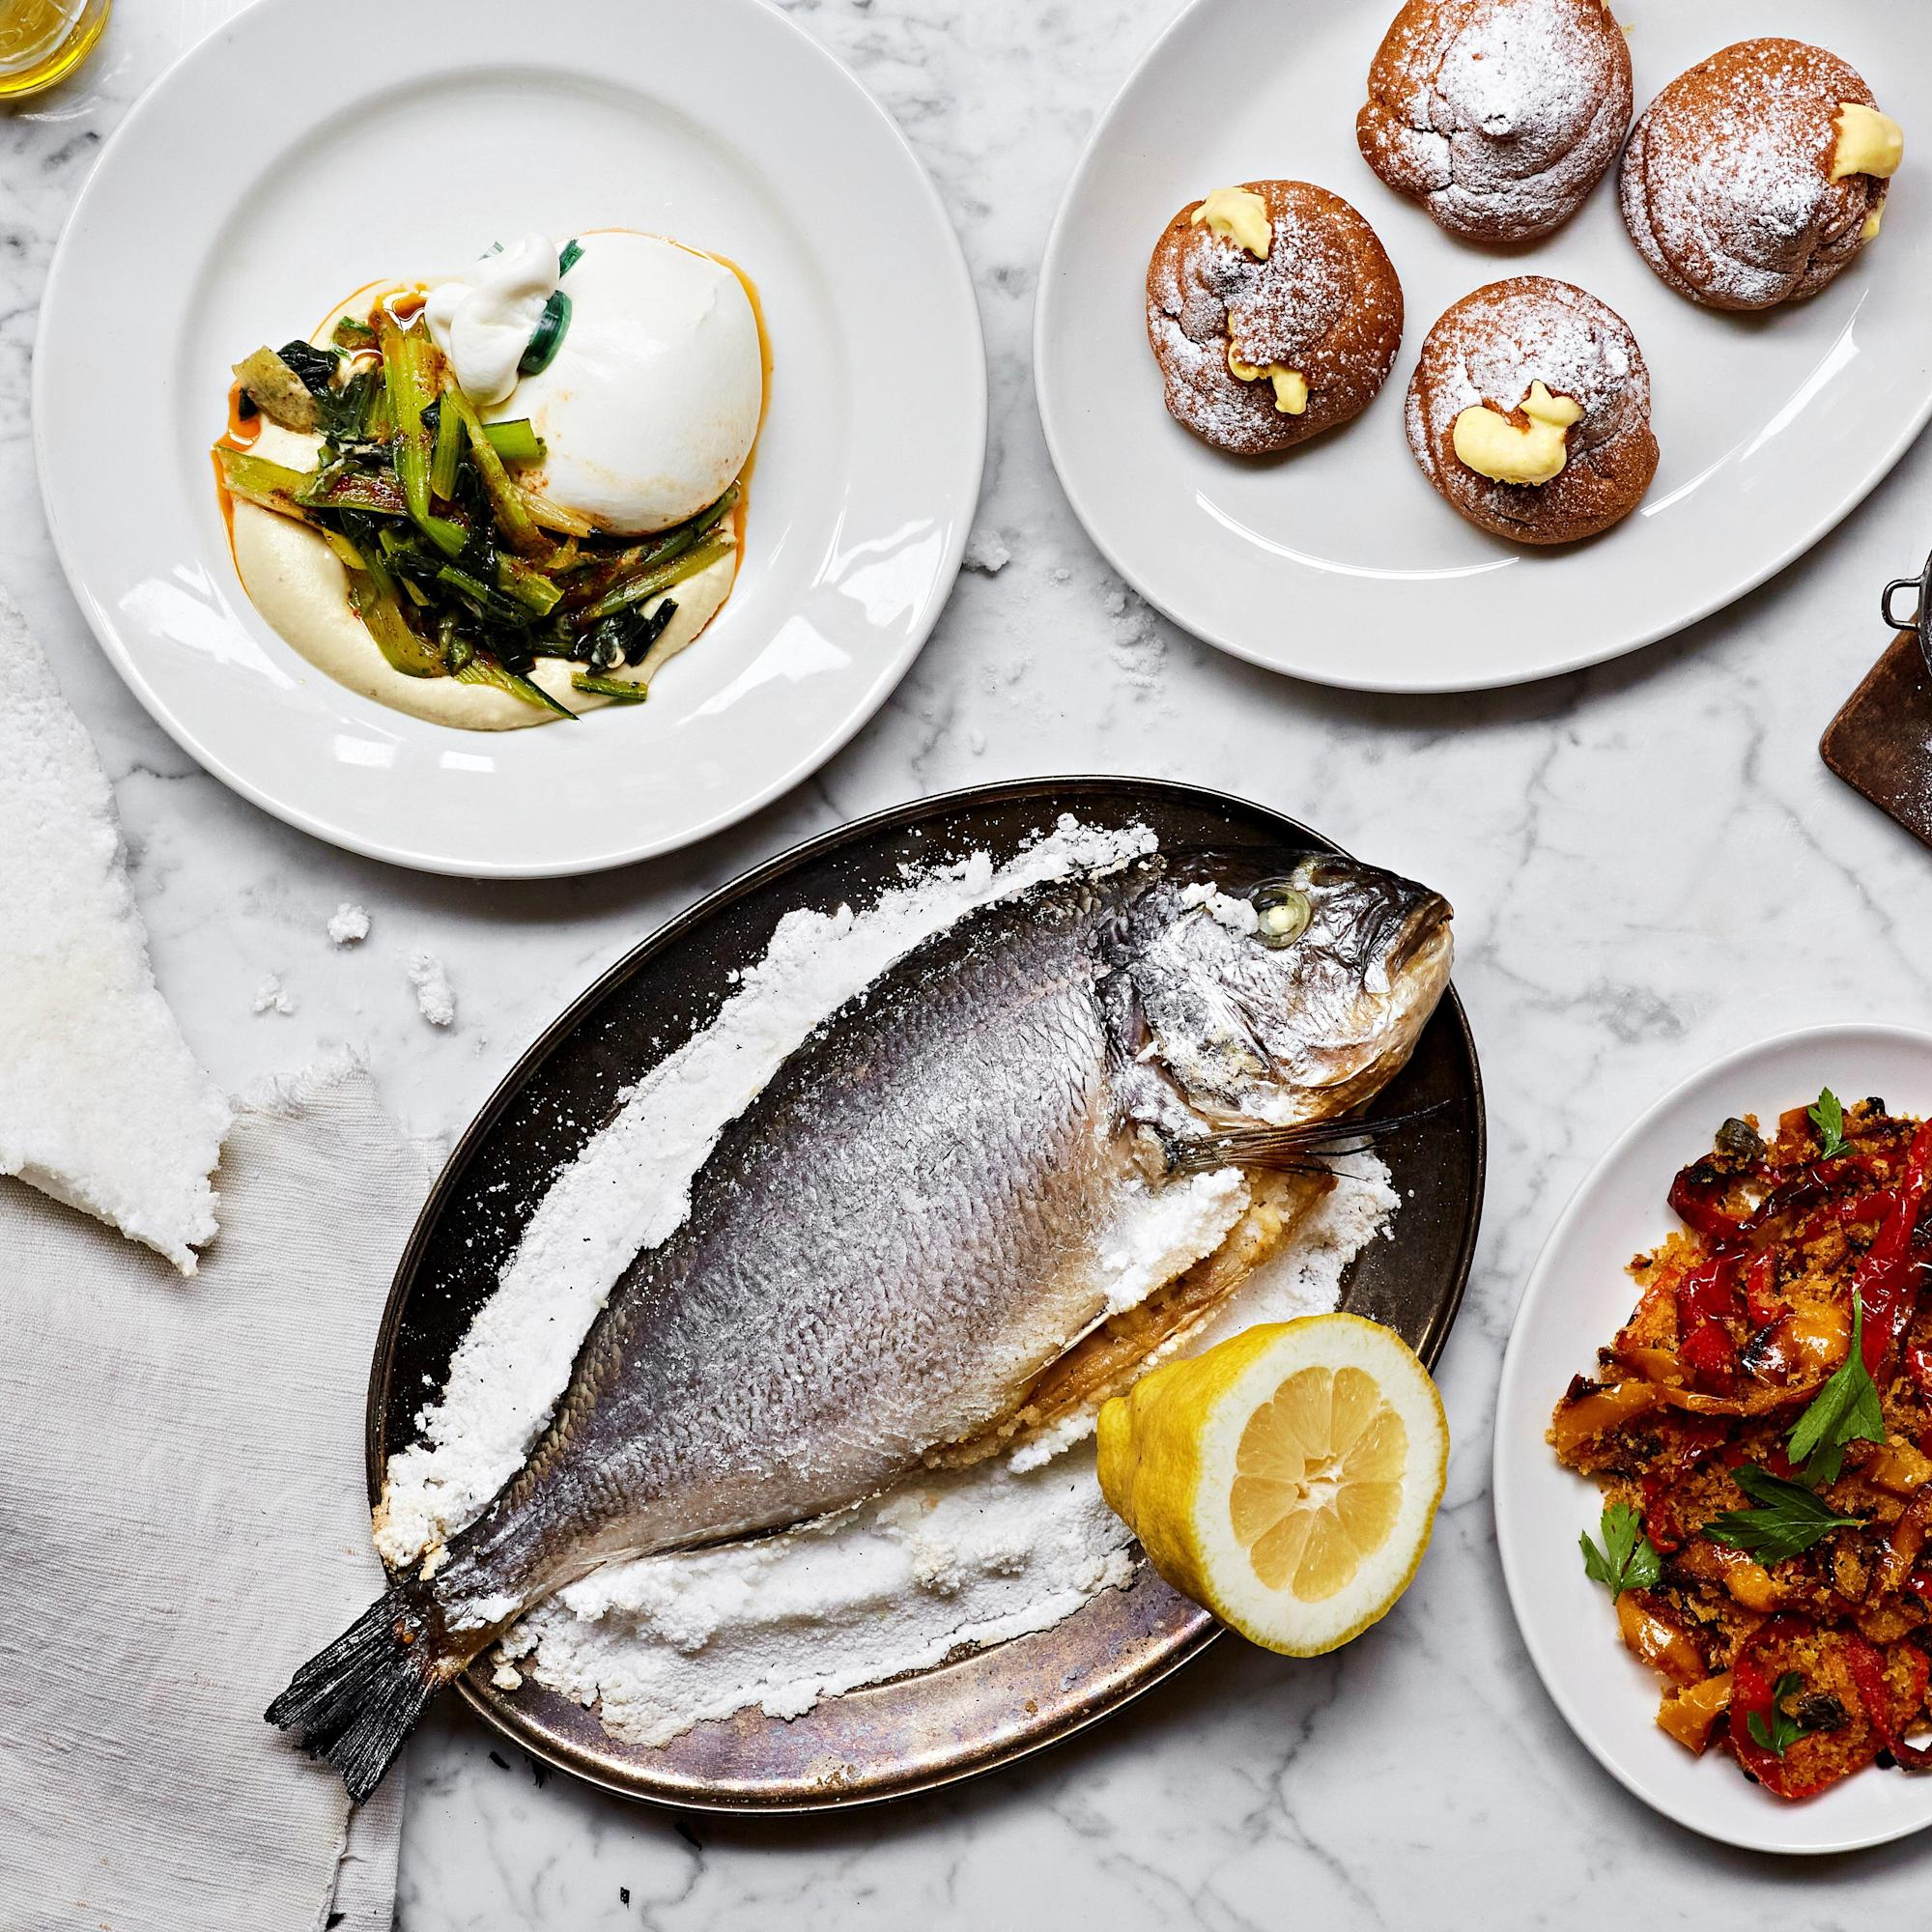 Fay Maschler reviews Bocca di Lupo At Home: Pivot to sunny Puglia saves the day in a wretched week